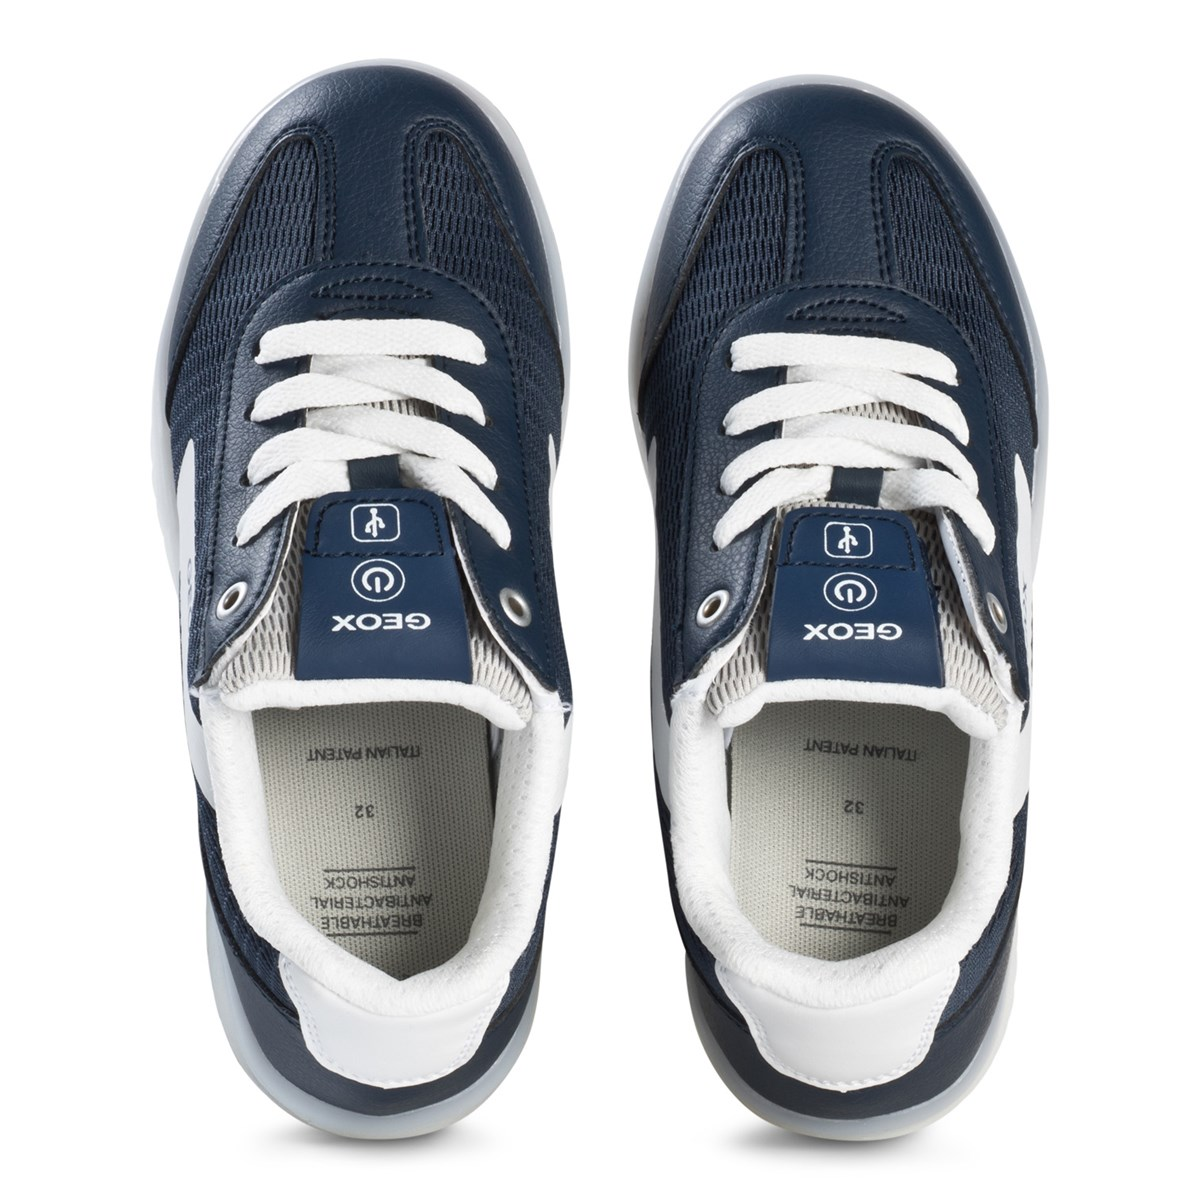 Geox Kommodor Light Up Trainers Navy and White Babyshop.dk